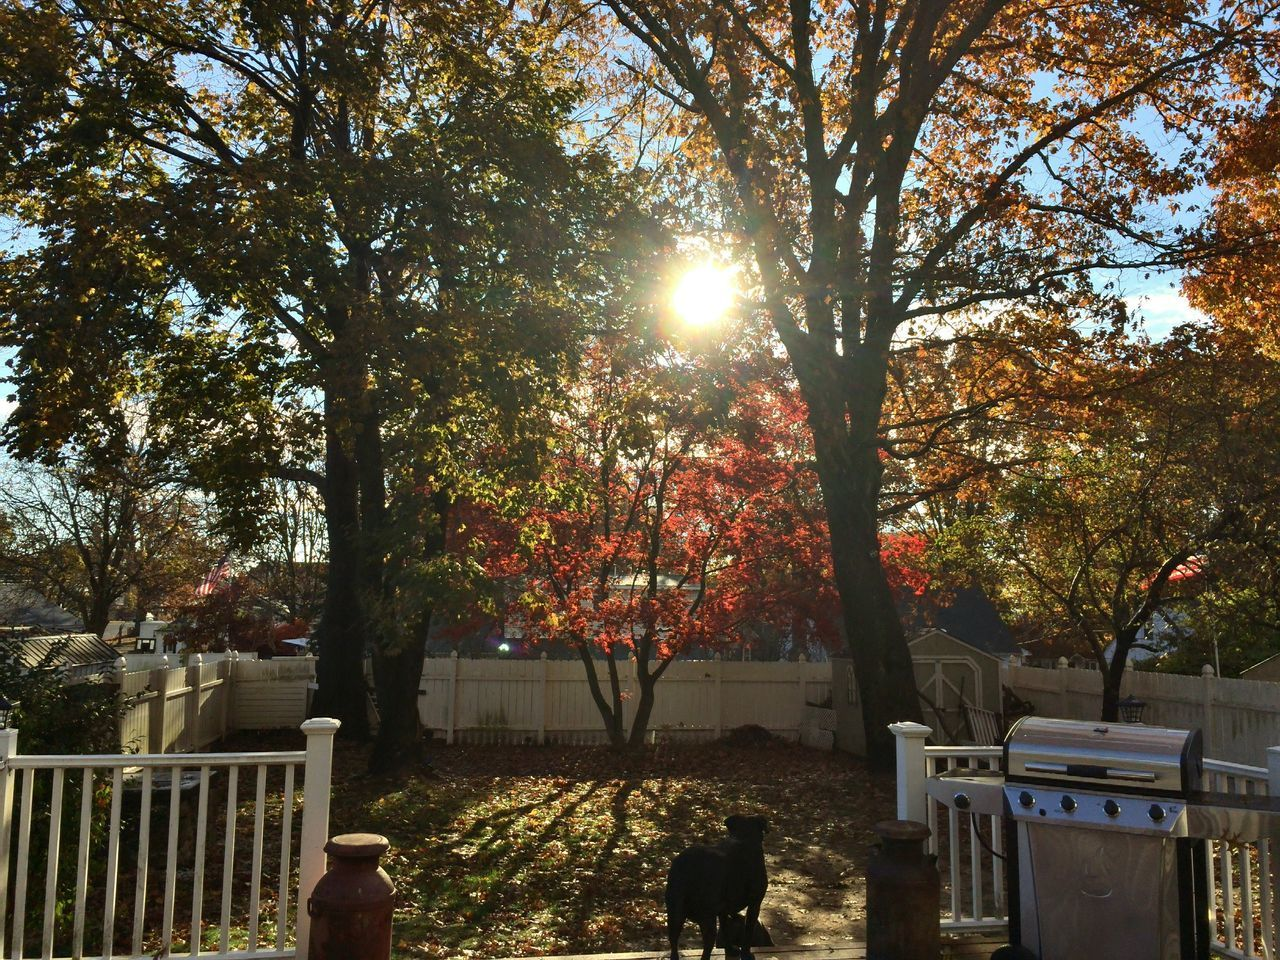 Sunrise Fall 2016 06516 Backyard Leaves Autumn Fall Fields And Sky Sun Through Trees Japanese Maple trees leaves Trees #leaves sunlight warm color Dukey Backdeck Home Sweet Home Home Sweet Home🏠 Connecticut Love My Trees